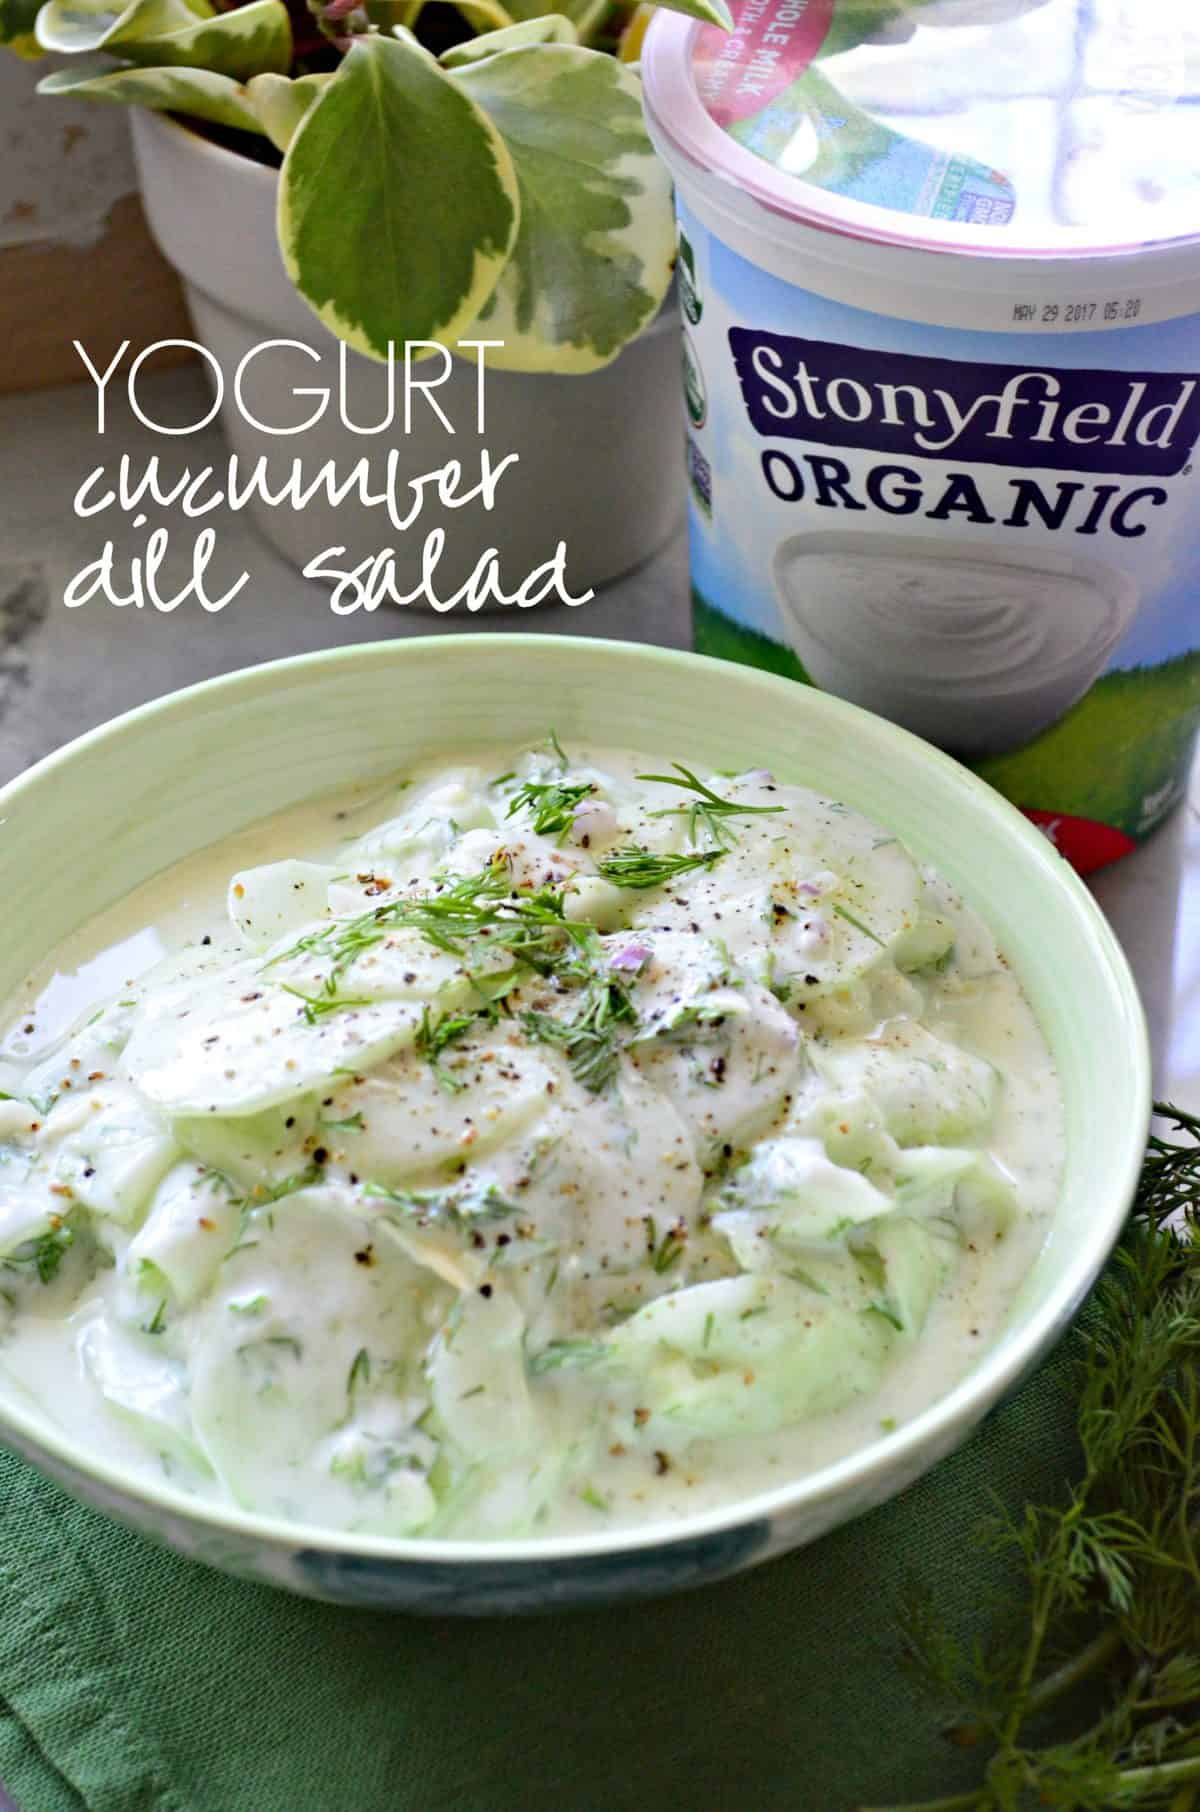 green bowl filled with yogurt dill cucumber salad on countertop in front of stonyfield organic yogurt with title text.